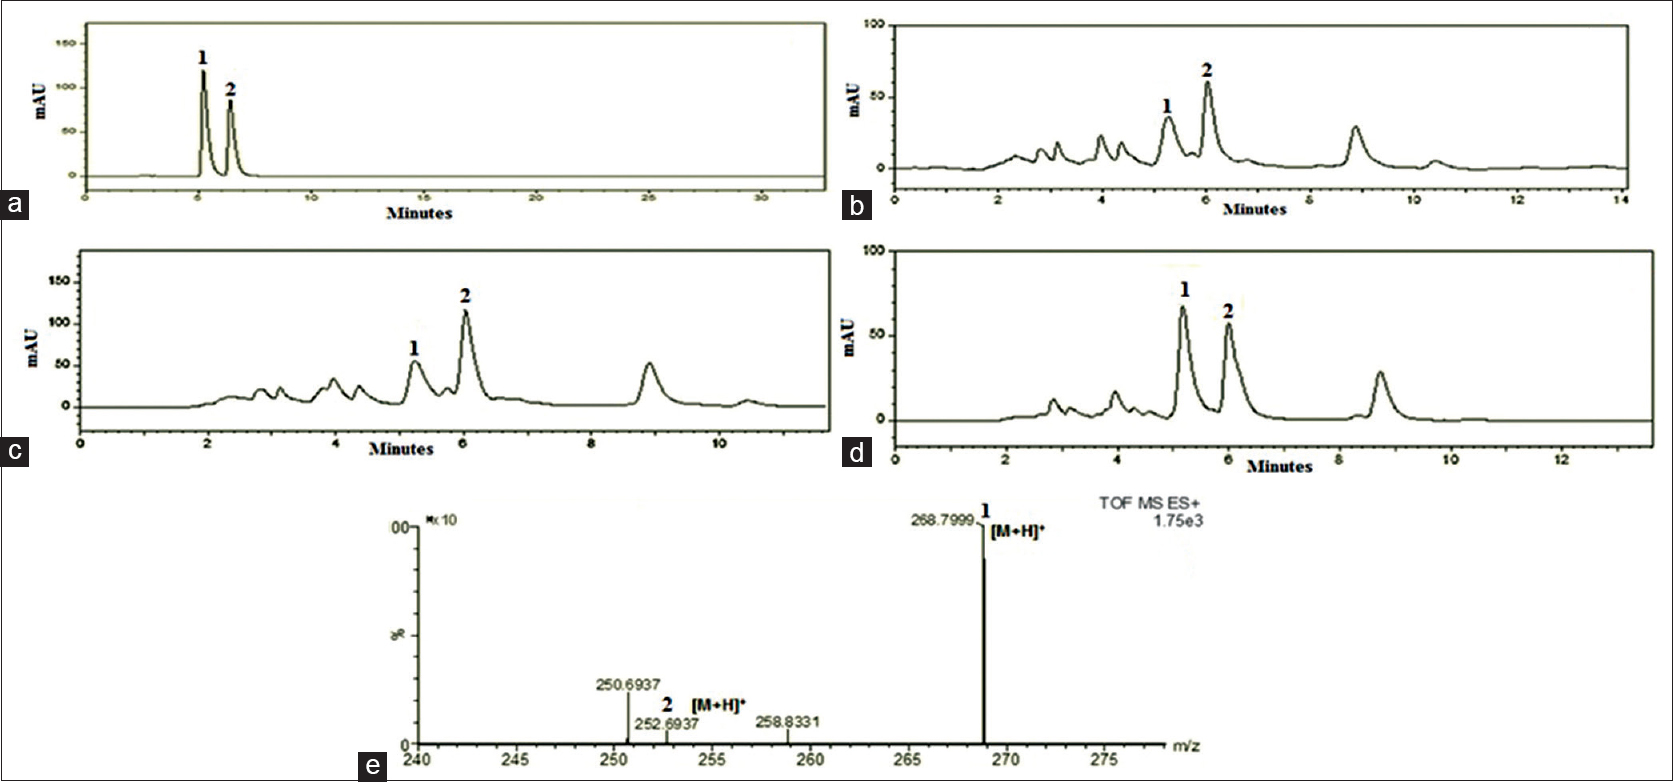 Figure 2: High performance liquid chromatography chromatograms for (a) Adenosine and cordycepin standard mixtures; (b) natural <i>Cordyceps sinensis</i> (dead larvae); (c) natural <i>Cordyceps sinensis</i> (fruiting body); (d) artificial <i>Cordyceps sinensis</i> CS1197 mycelium; (e) mass spectra of nucleosides present in CS1197 mycelium